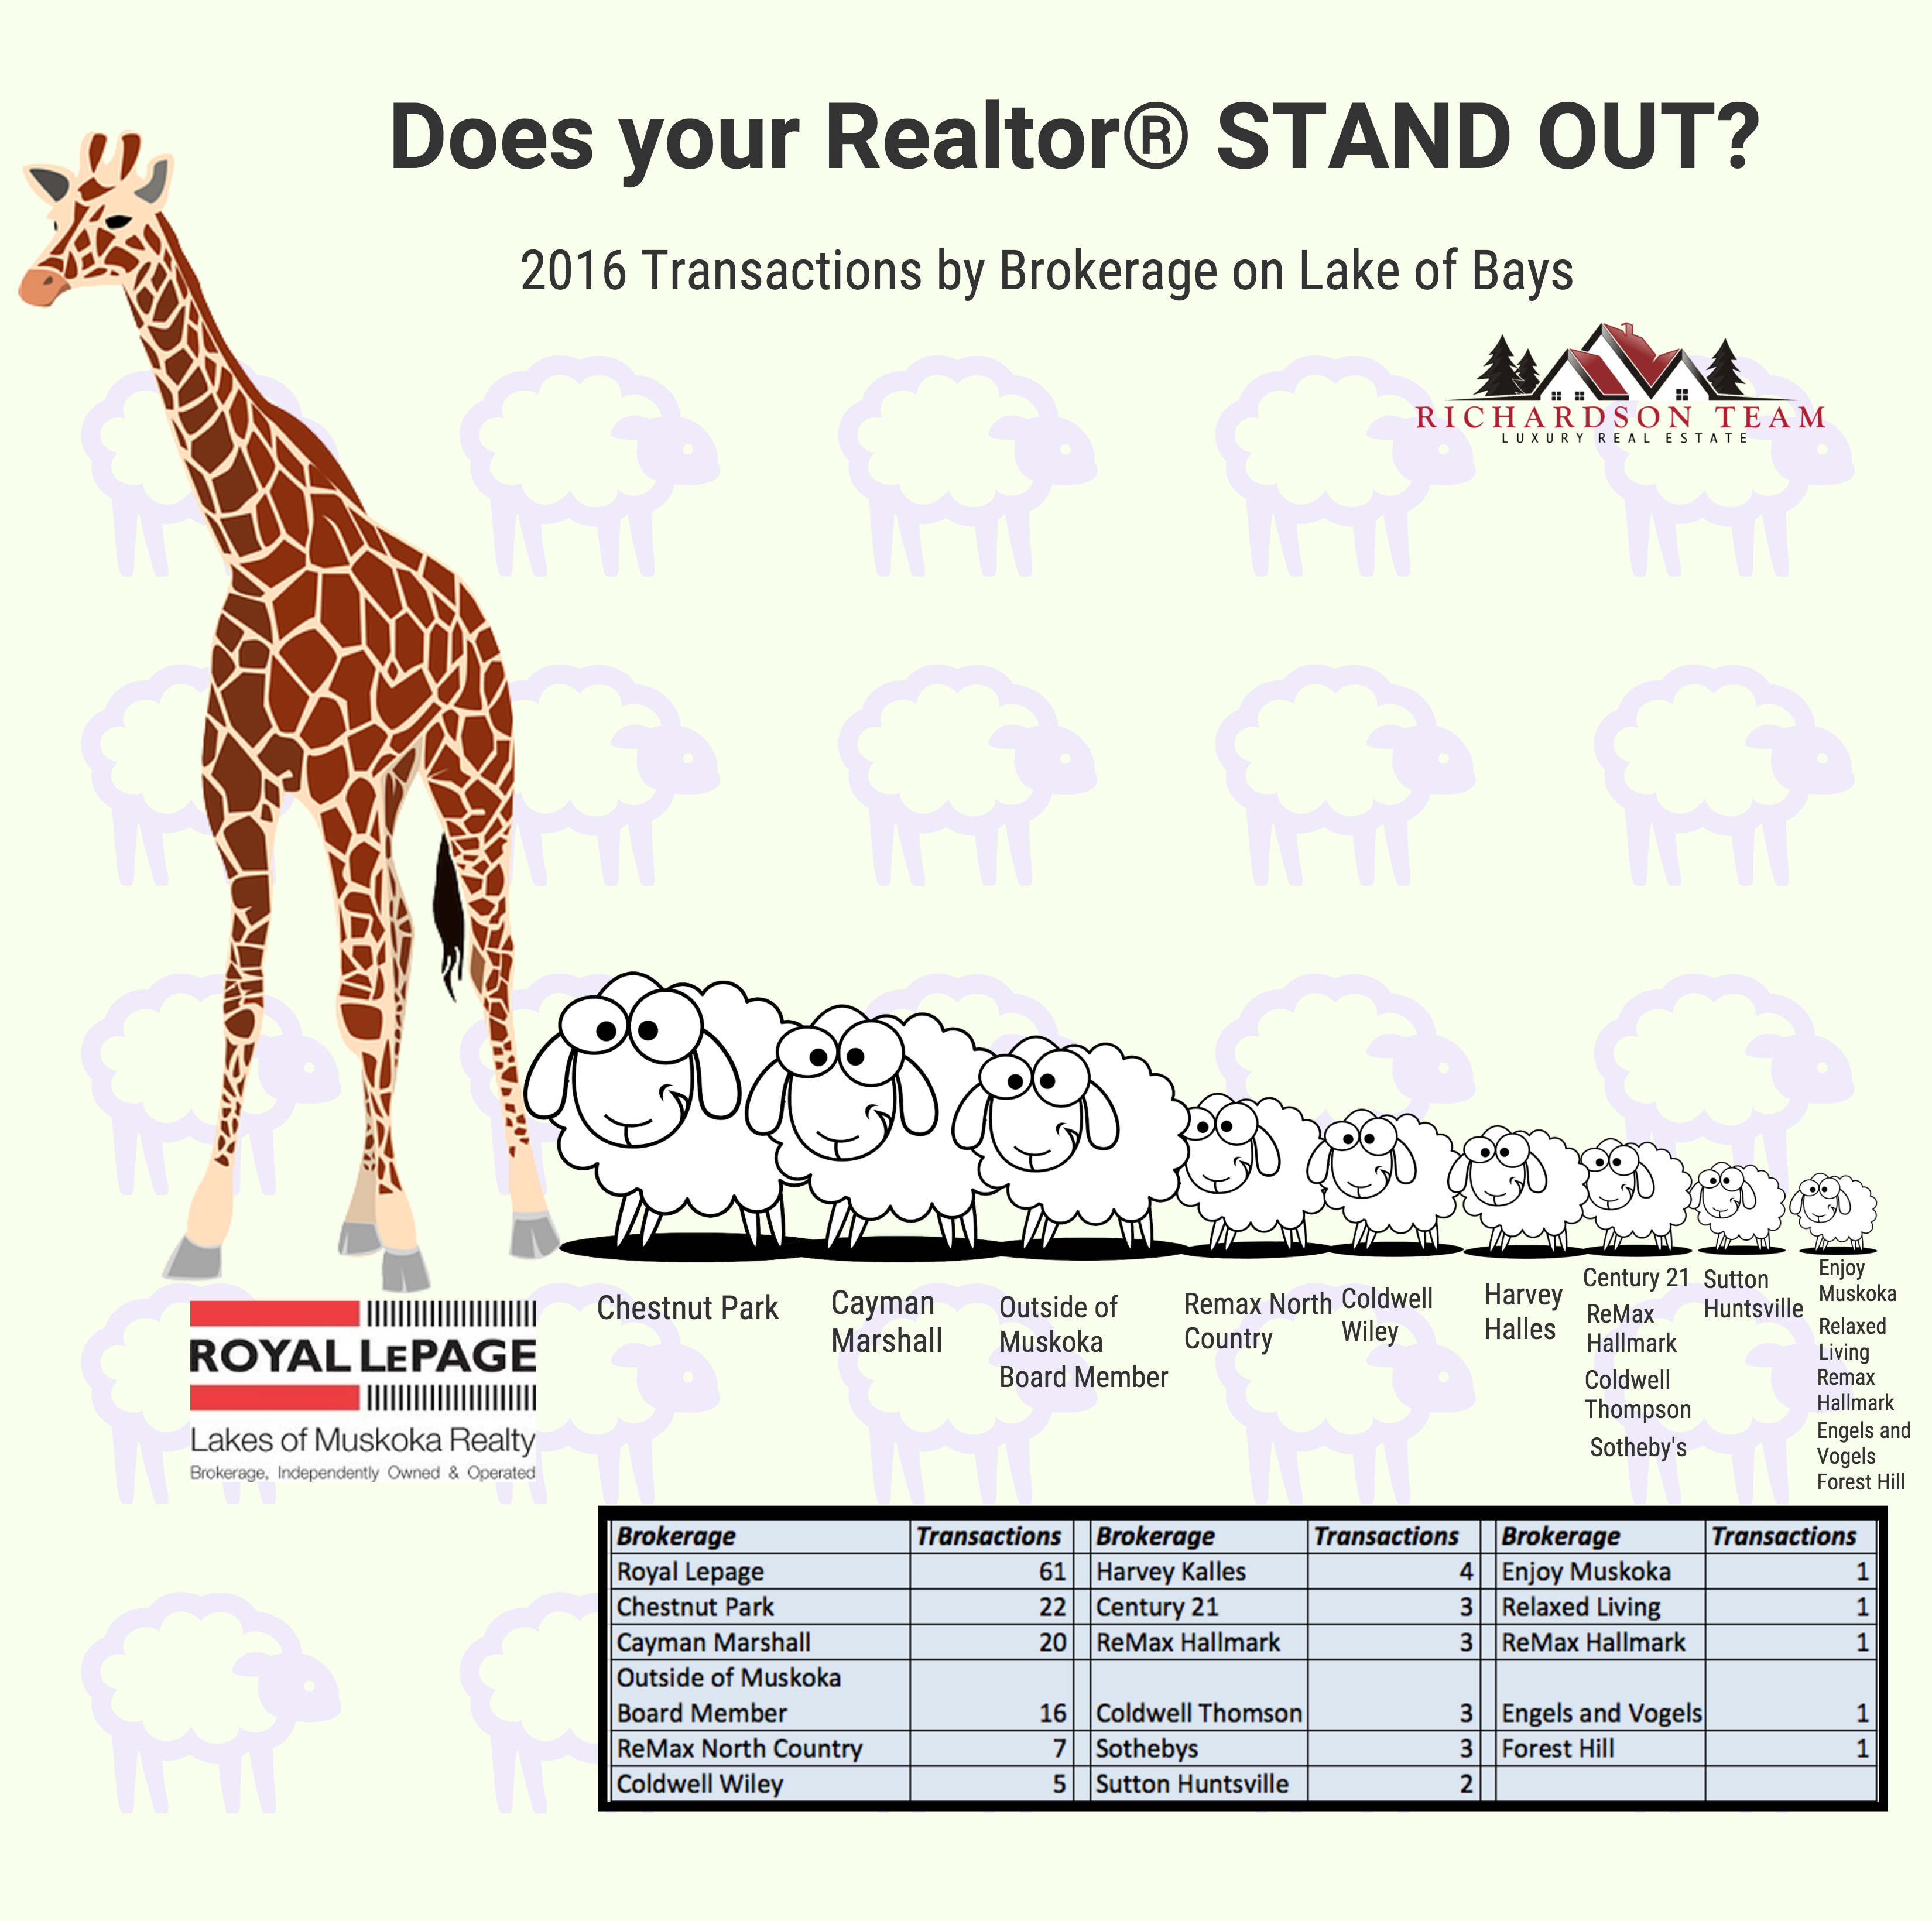 Does your Realtor STAND OUT?